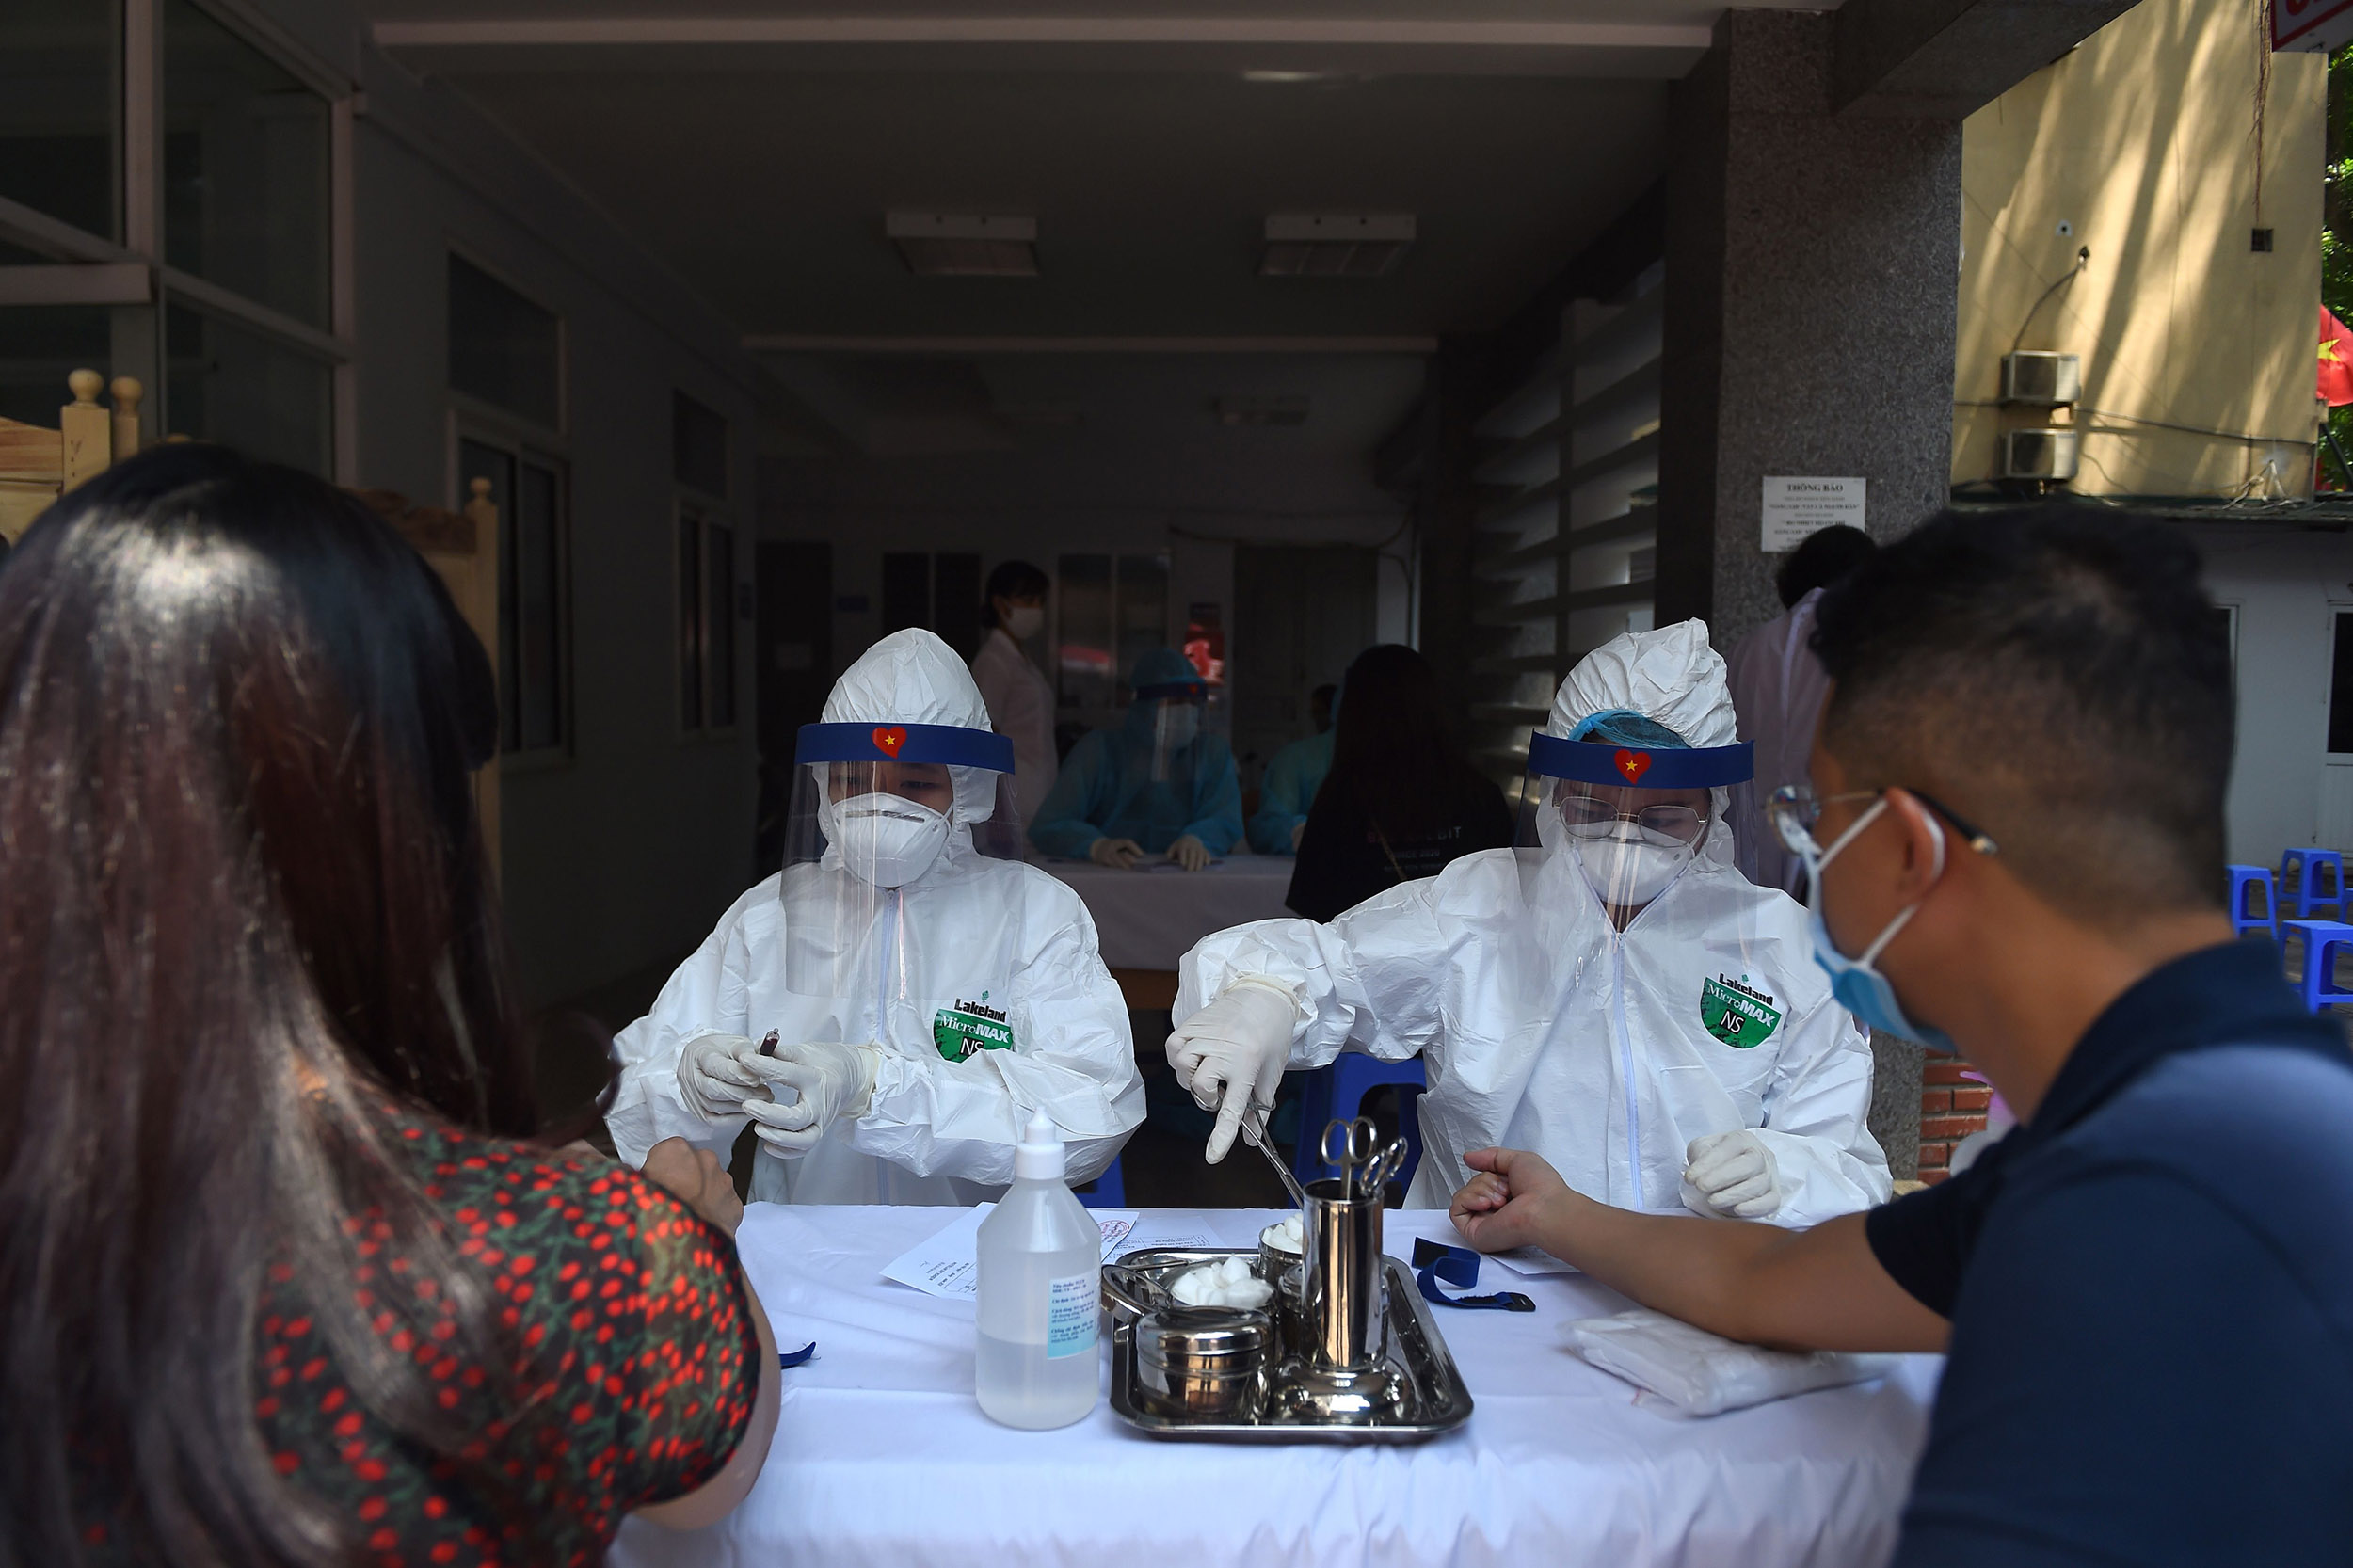 Residents get blood samples taken by health workers at a Covid-19 rapid testing site in Hanoi, Vietnam, on July 30.